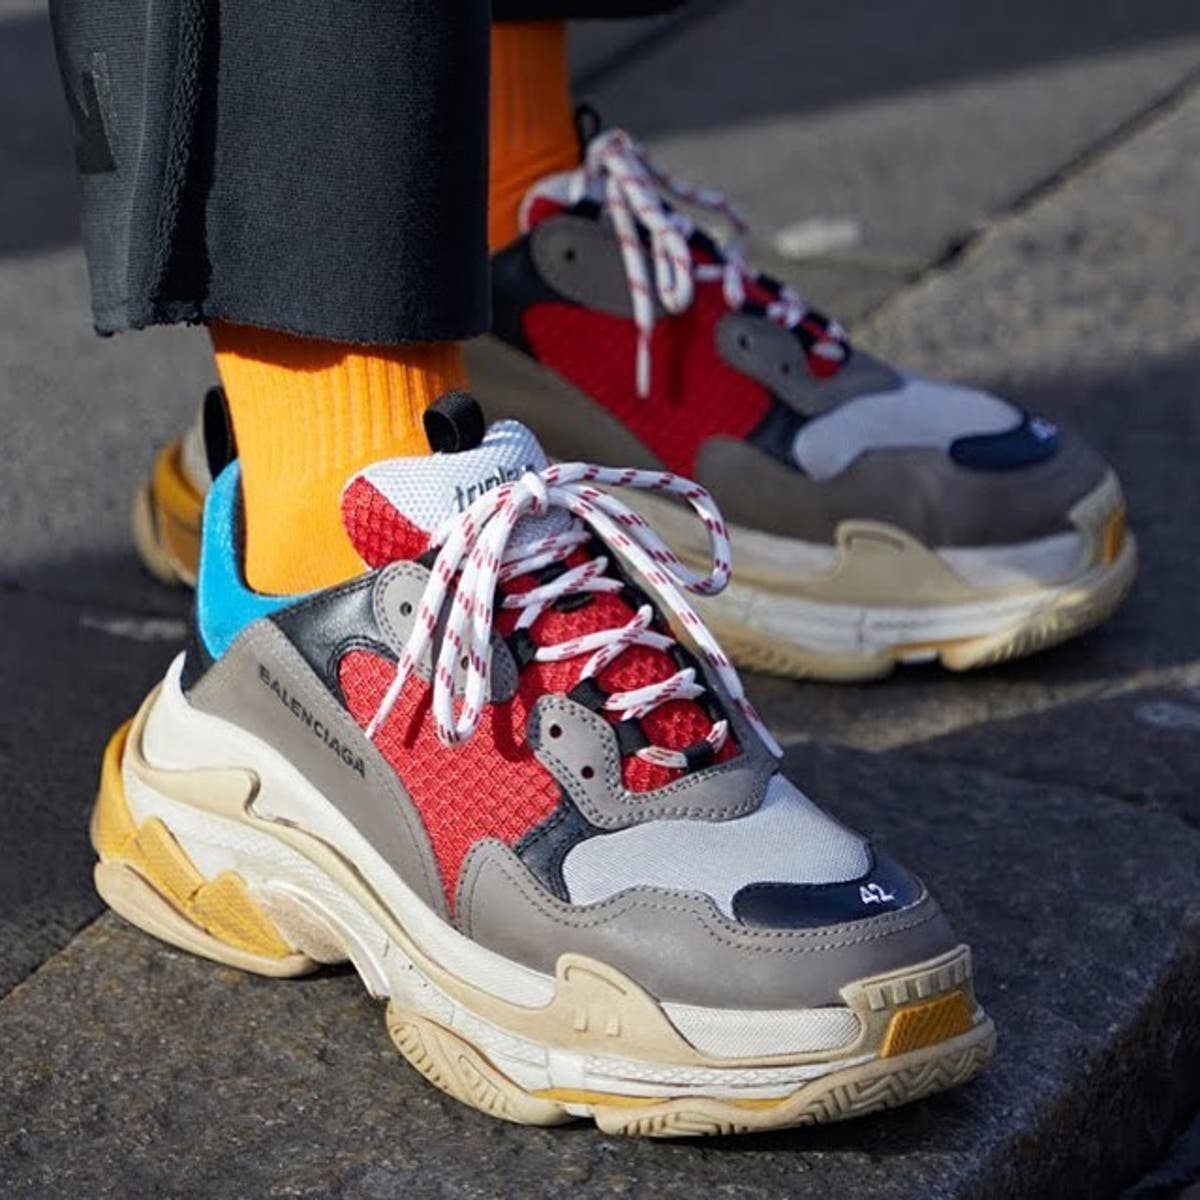 rehén Laboratorio Farmacología  They are ugly!' Kenyan celebs reveal why they can't wear Balenciaga shoes